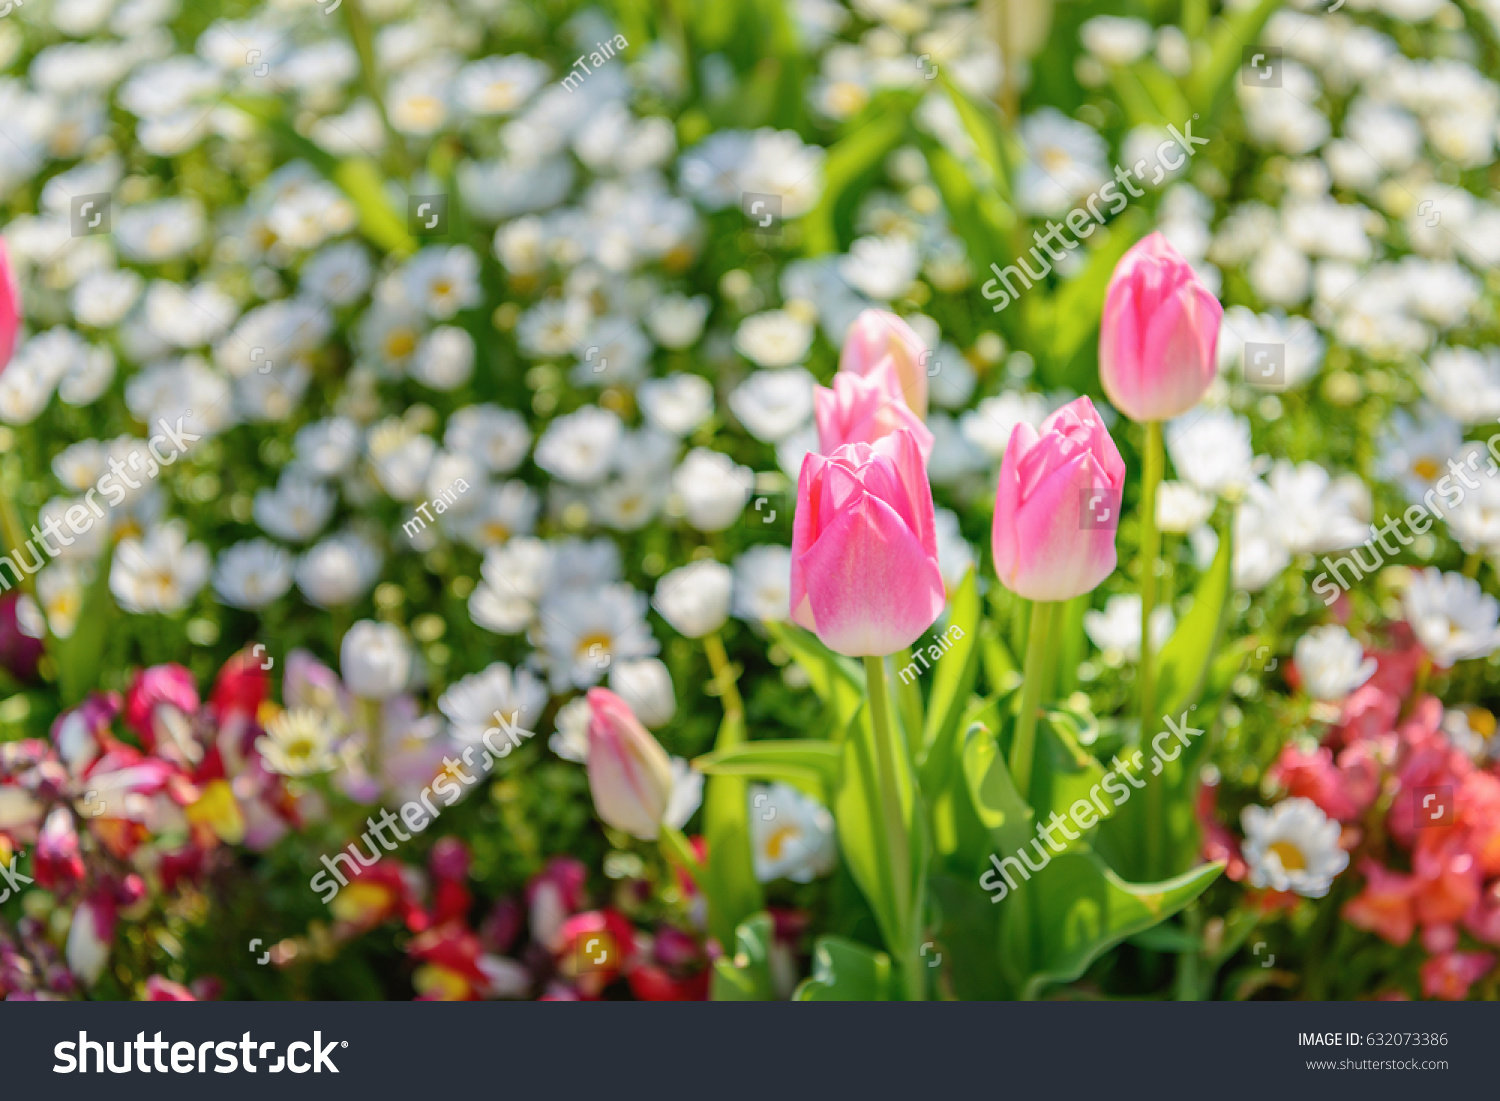 Beautiful flowers blooming flower bed stock photo edit now beautiful flowers blooming in the flower bed izmirmasajfo